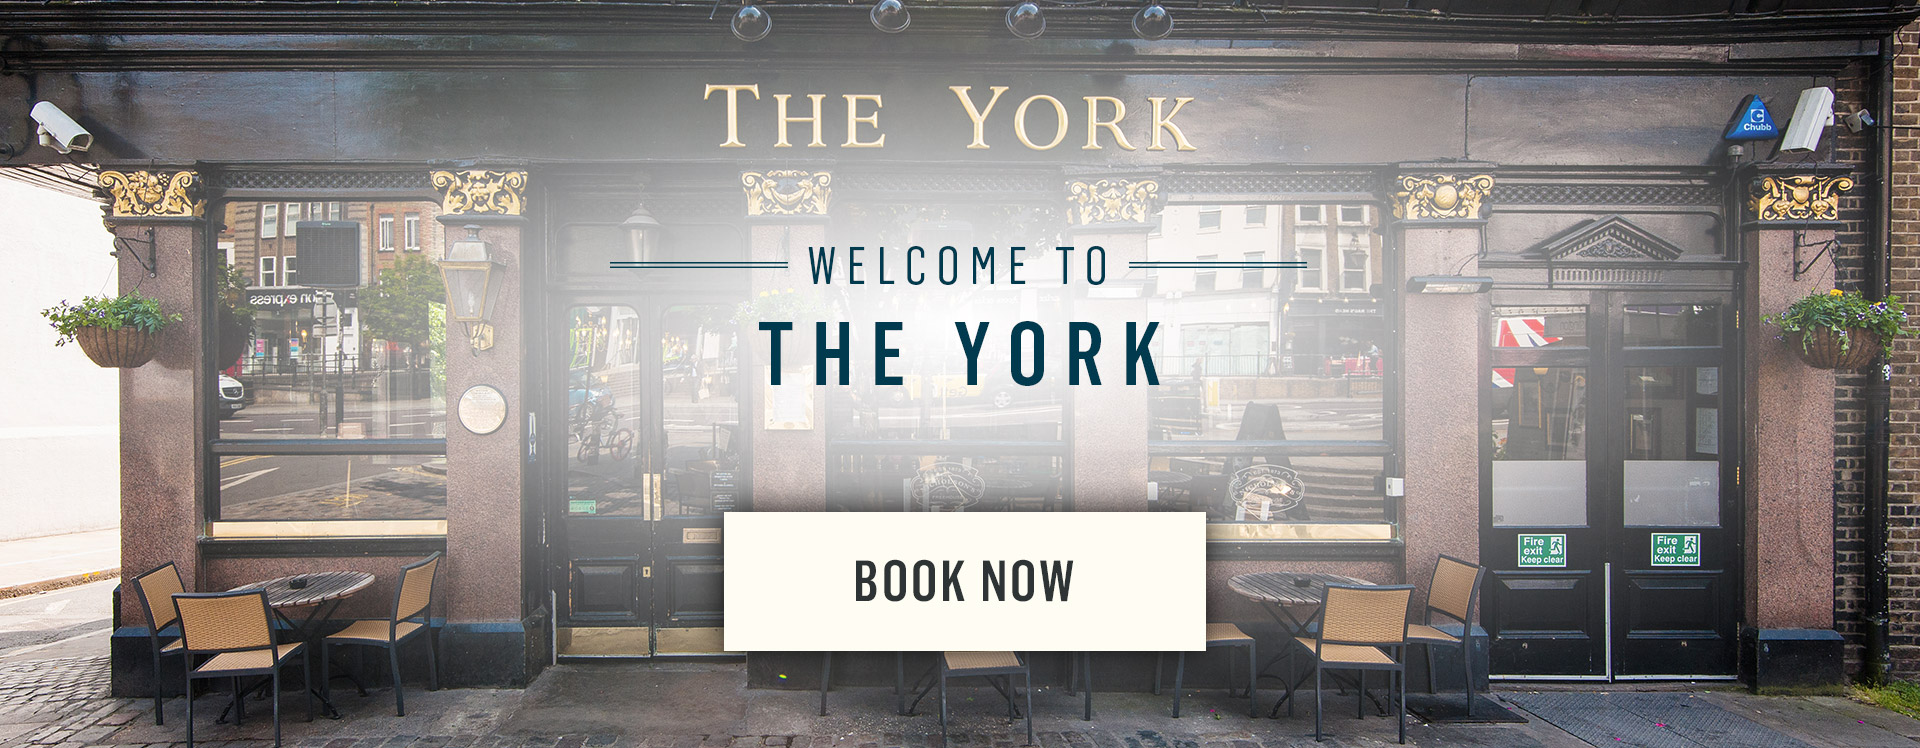 Welcome to The York - Book Now